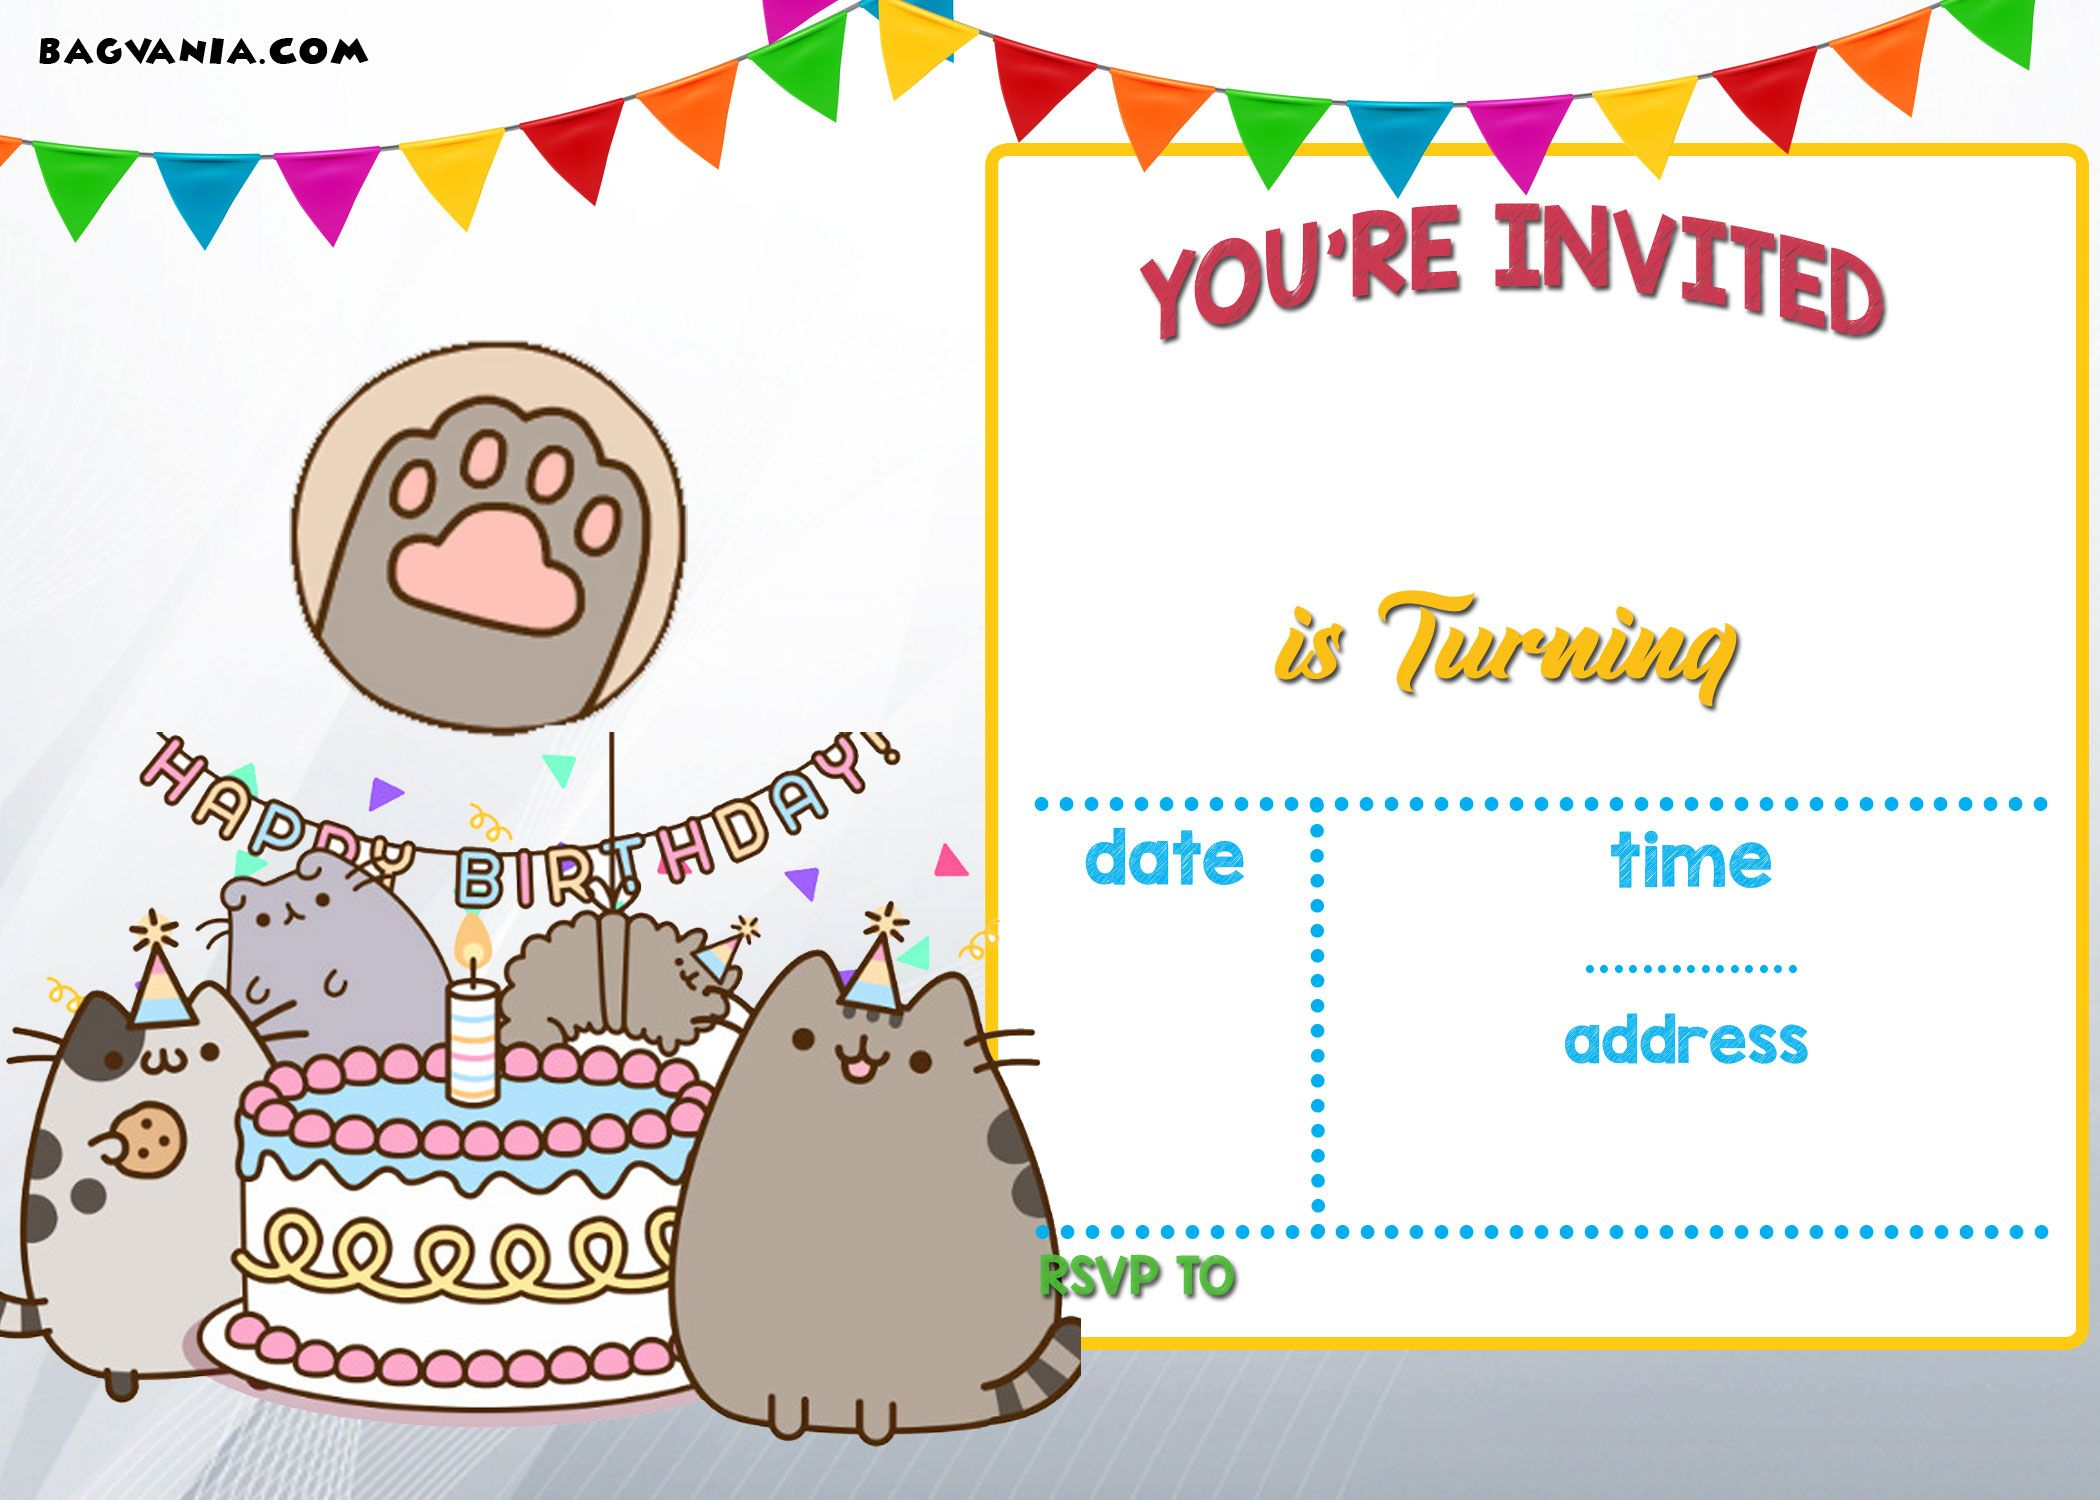 Free Printable Pusheen Birthday Invitation Template In Dimensions 2100 X 1500